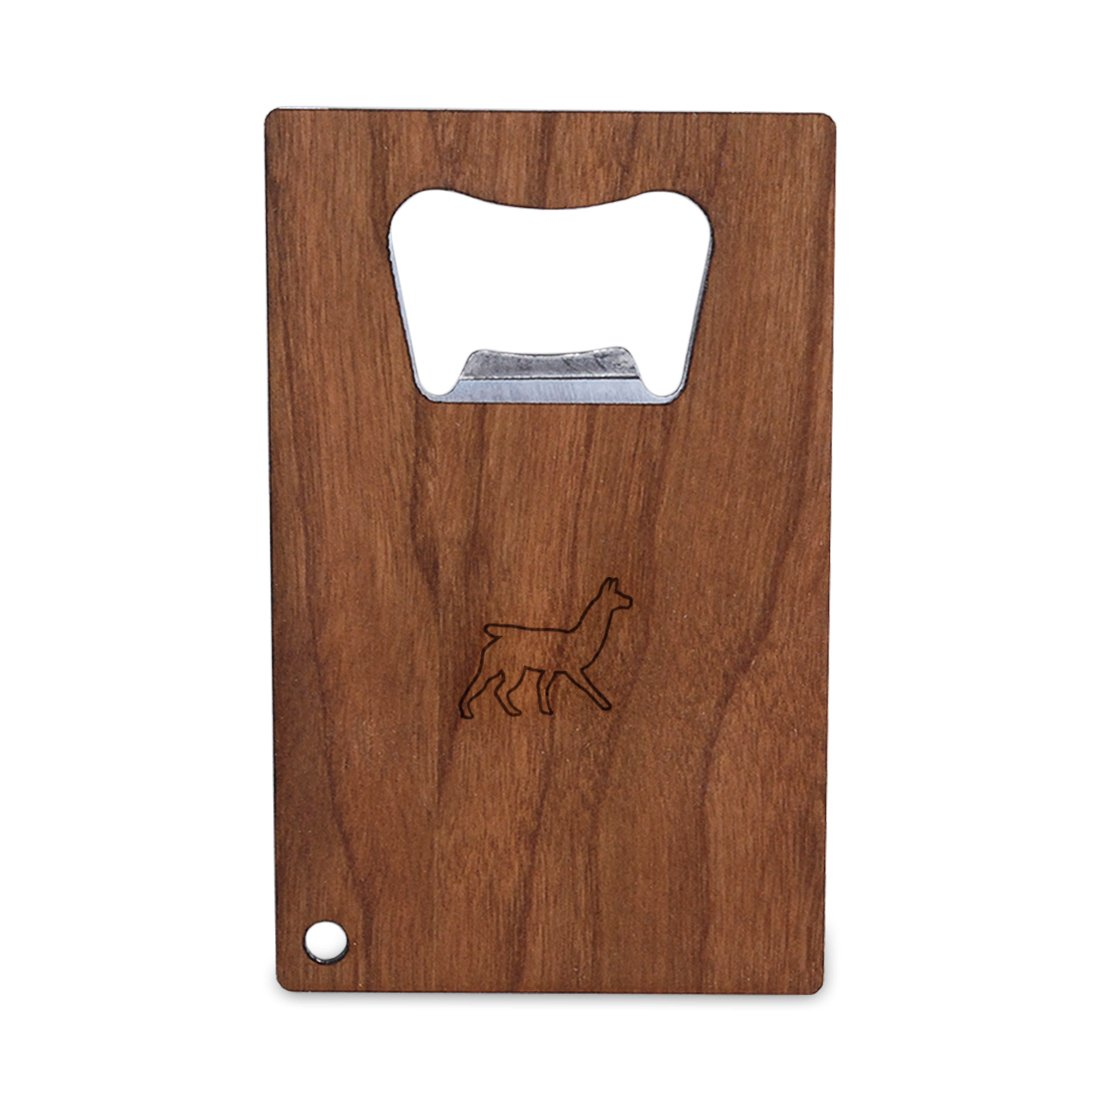 Slim And Wallet Size WOODEN ACCESSORIES COMPANY Credit Card Sized Bottle Opener With Laser Engraved Llama Design Stainless Steel Bottle Opener With Wooden Front Panel